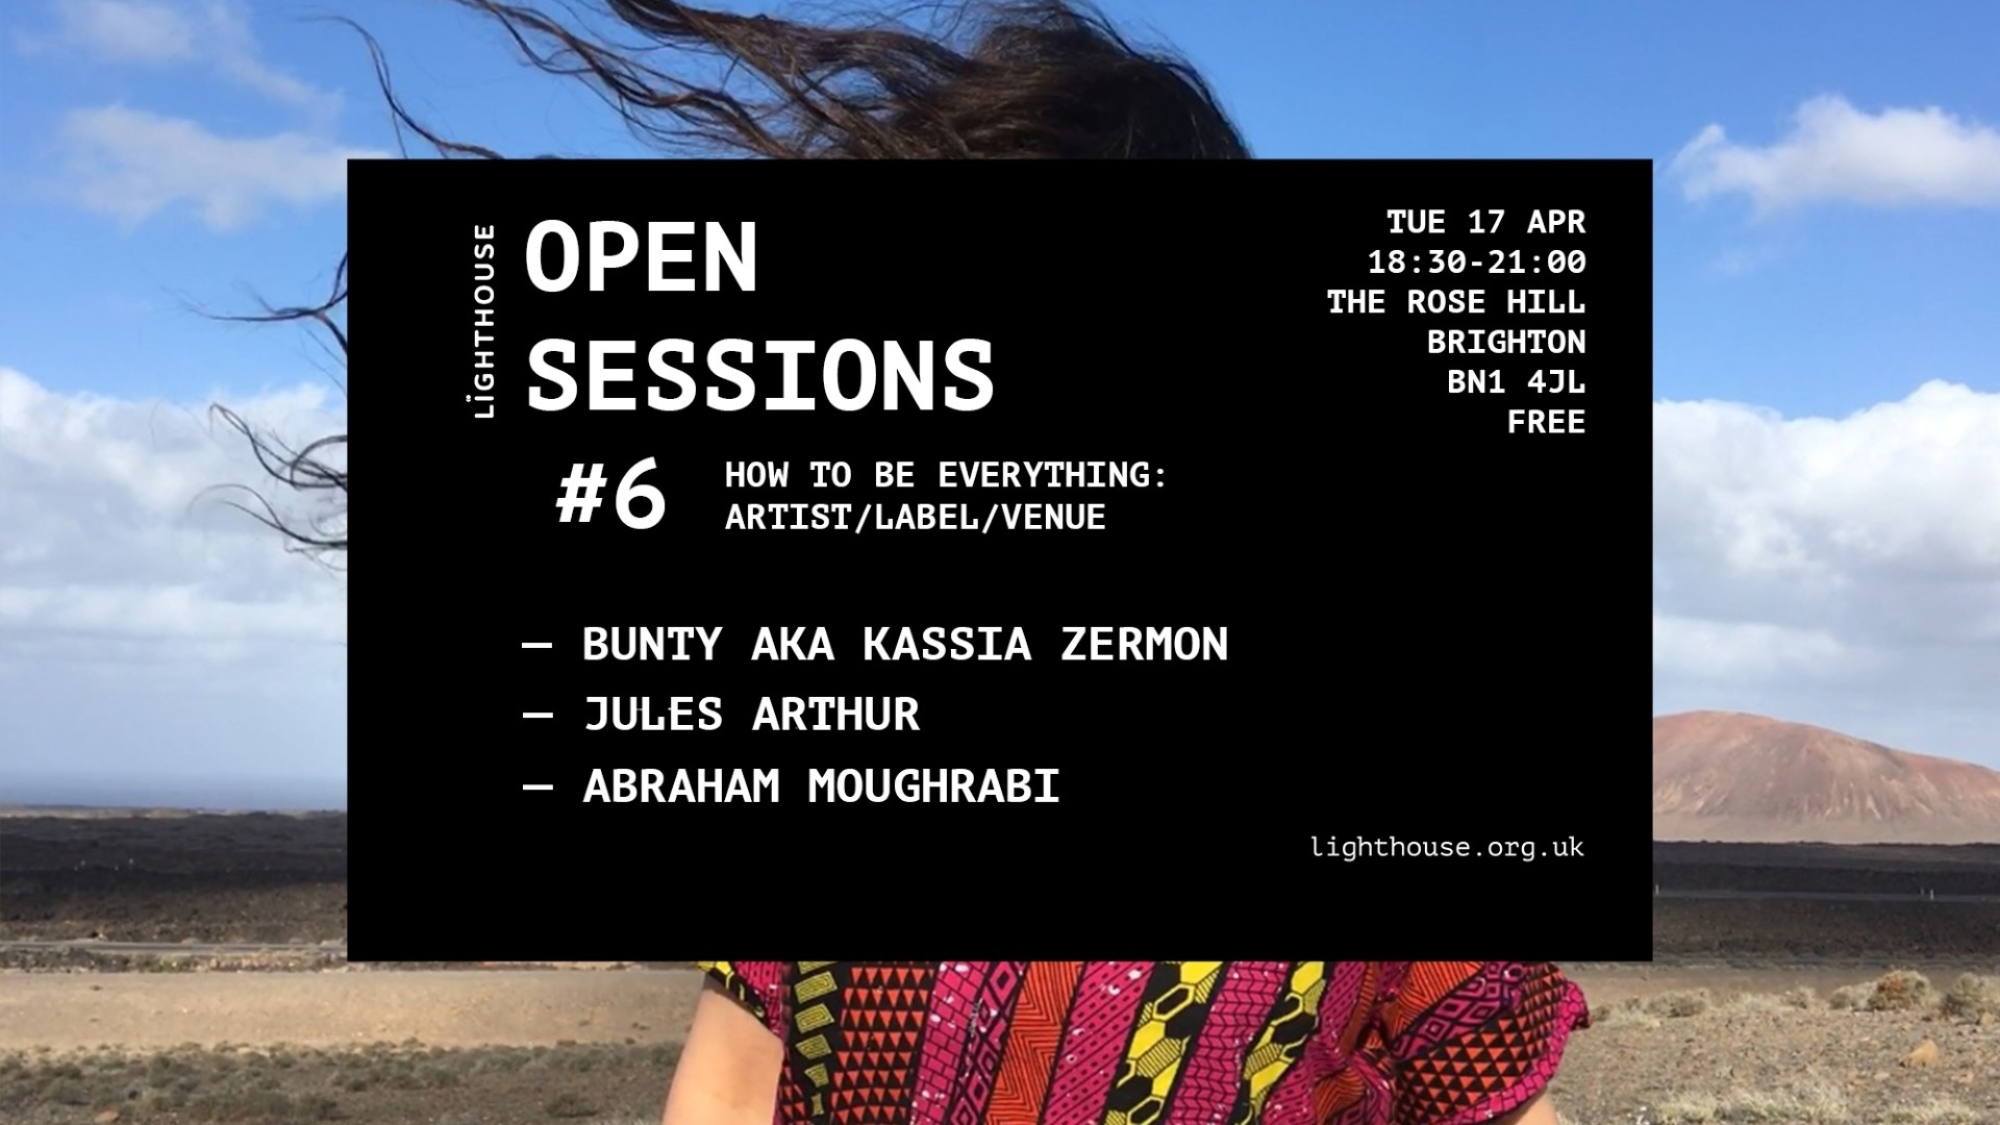 Open Session #6: How To Be Everything